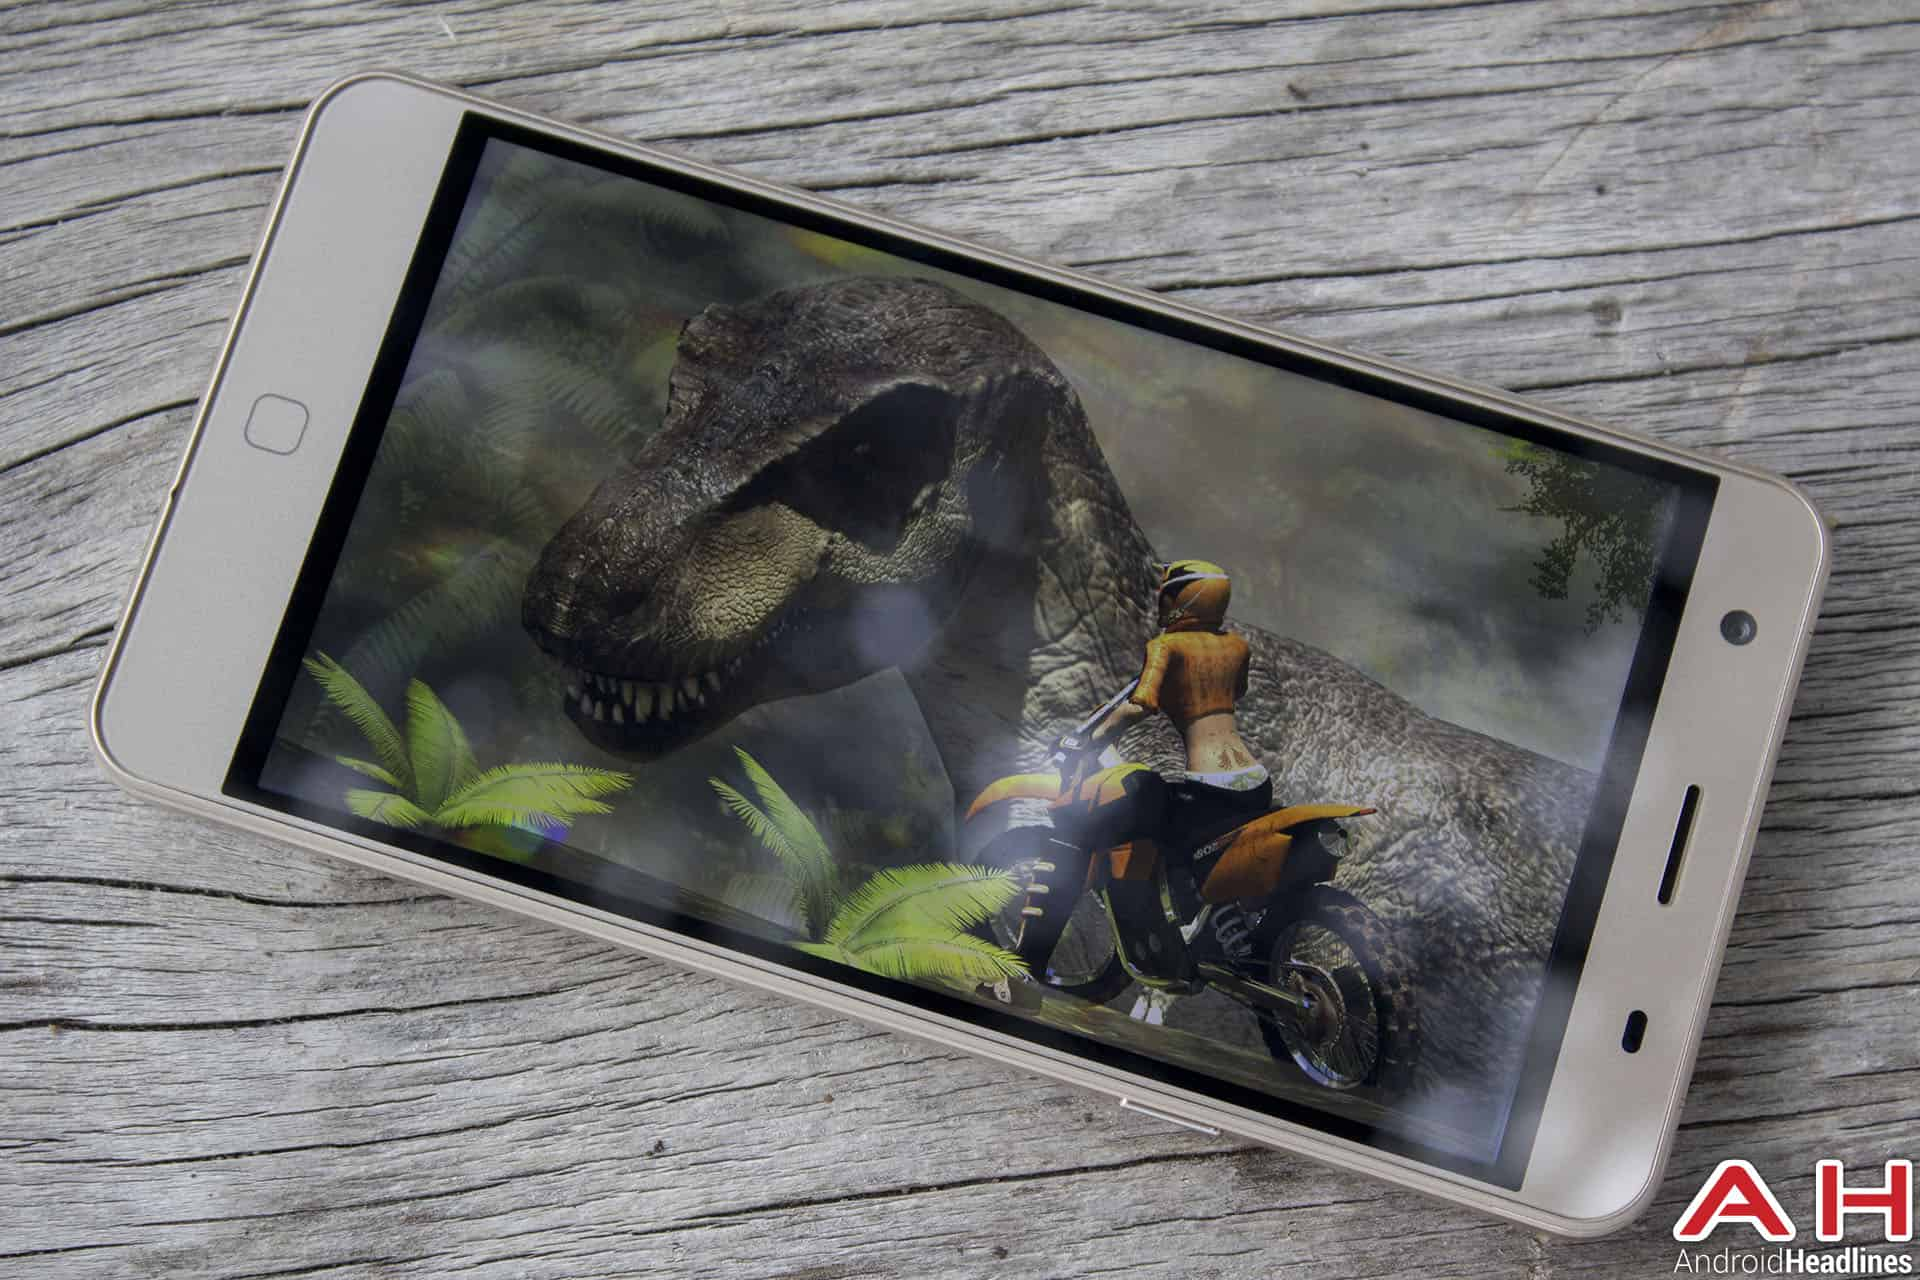 Elephone-P7000-Review-AH-performance